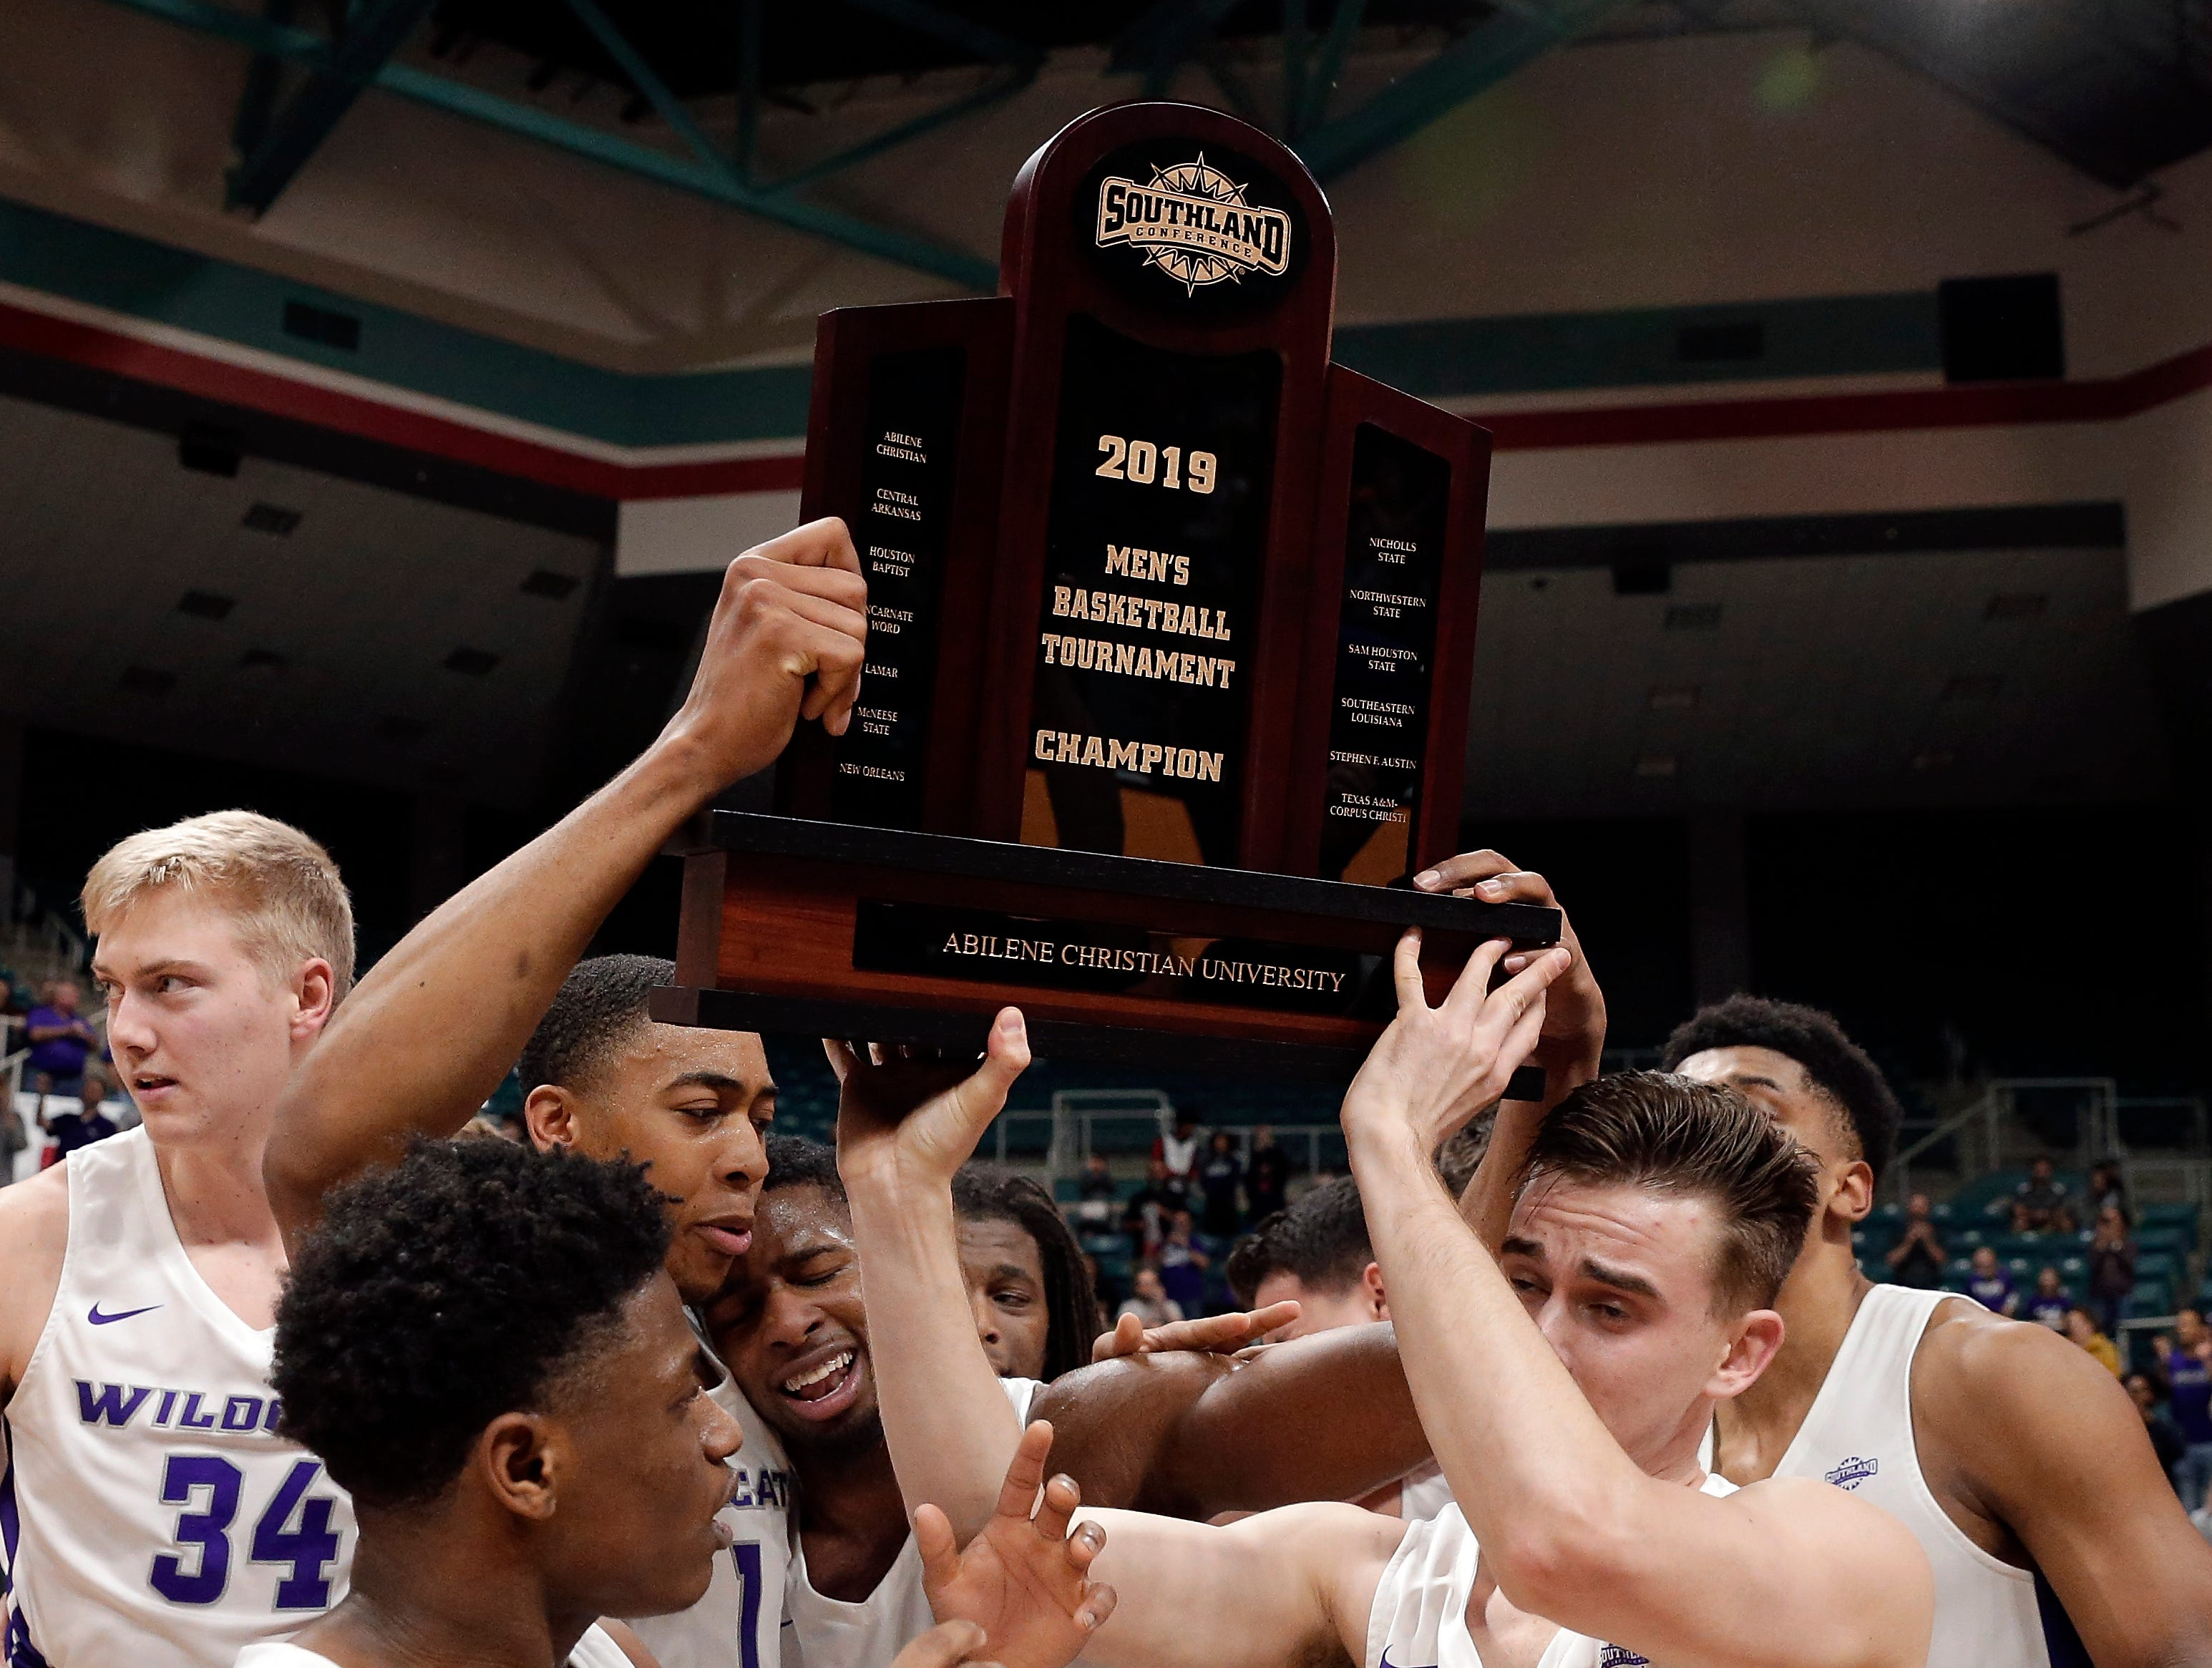 Abilene Christian players hoist the championship trophy after defeating New Orleans in an NCAA college basketball game for the Southland Conference men's tournament title Saturday, March 16, 2019, in Katy, Texas.